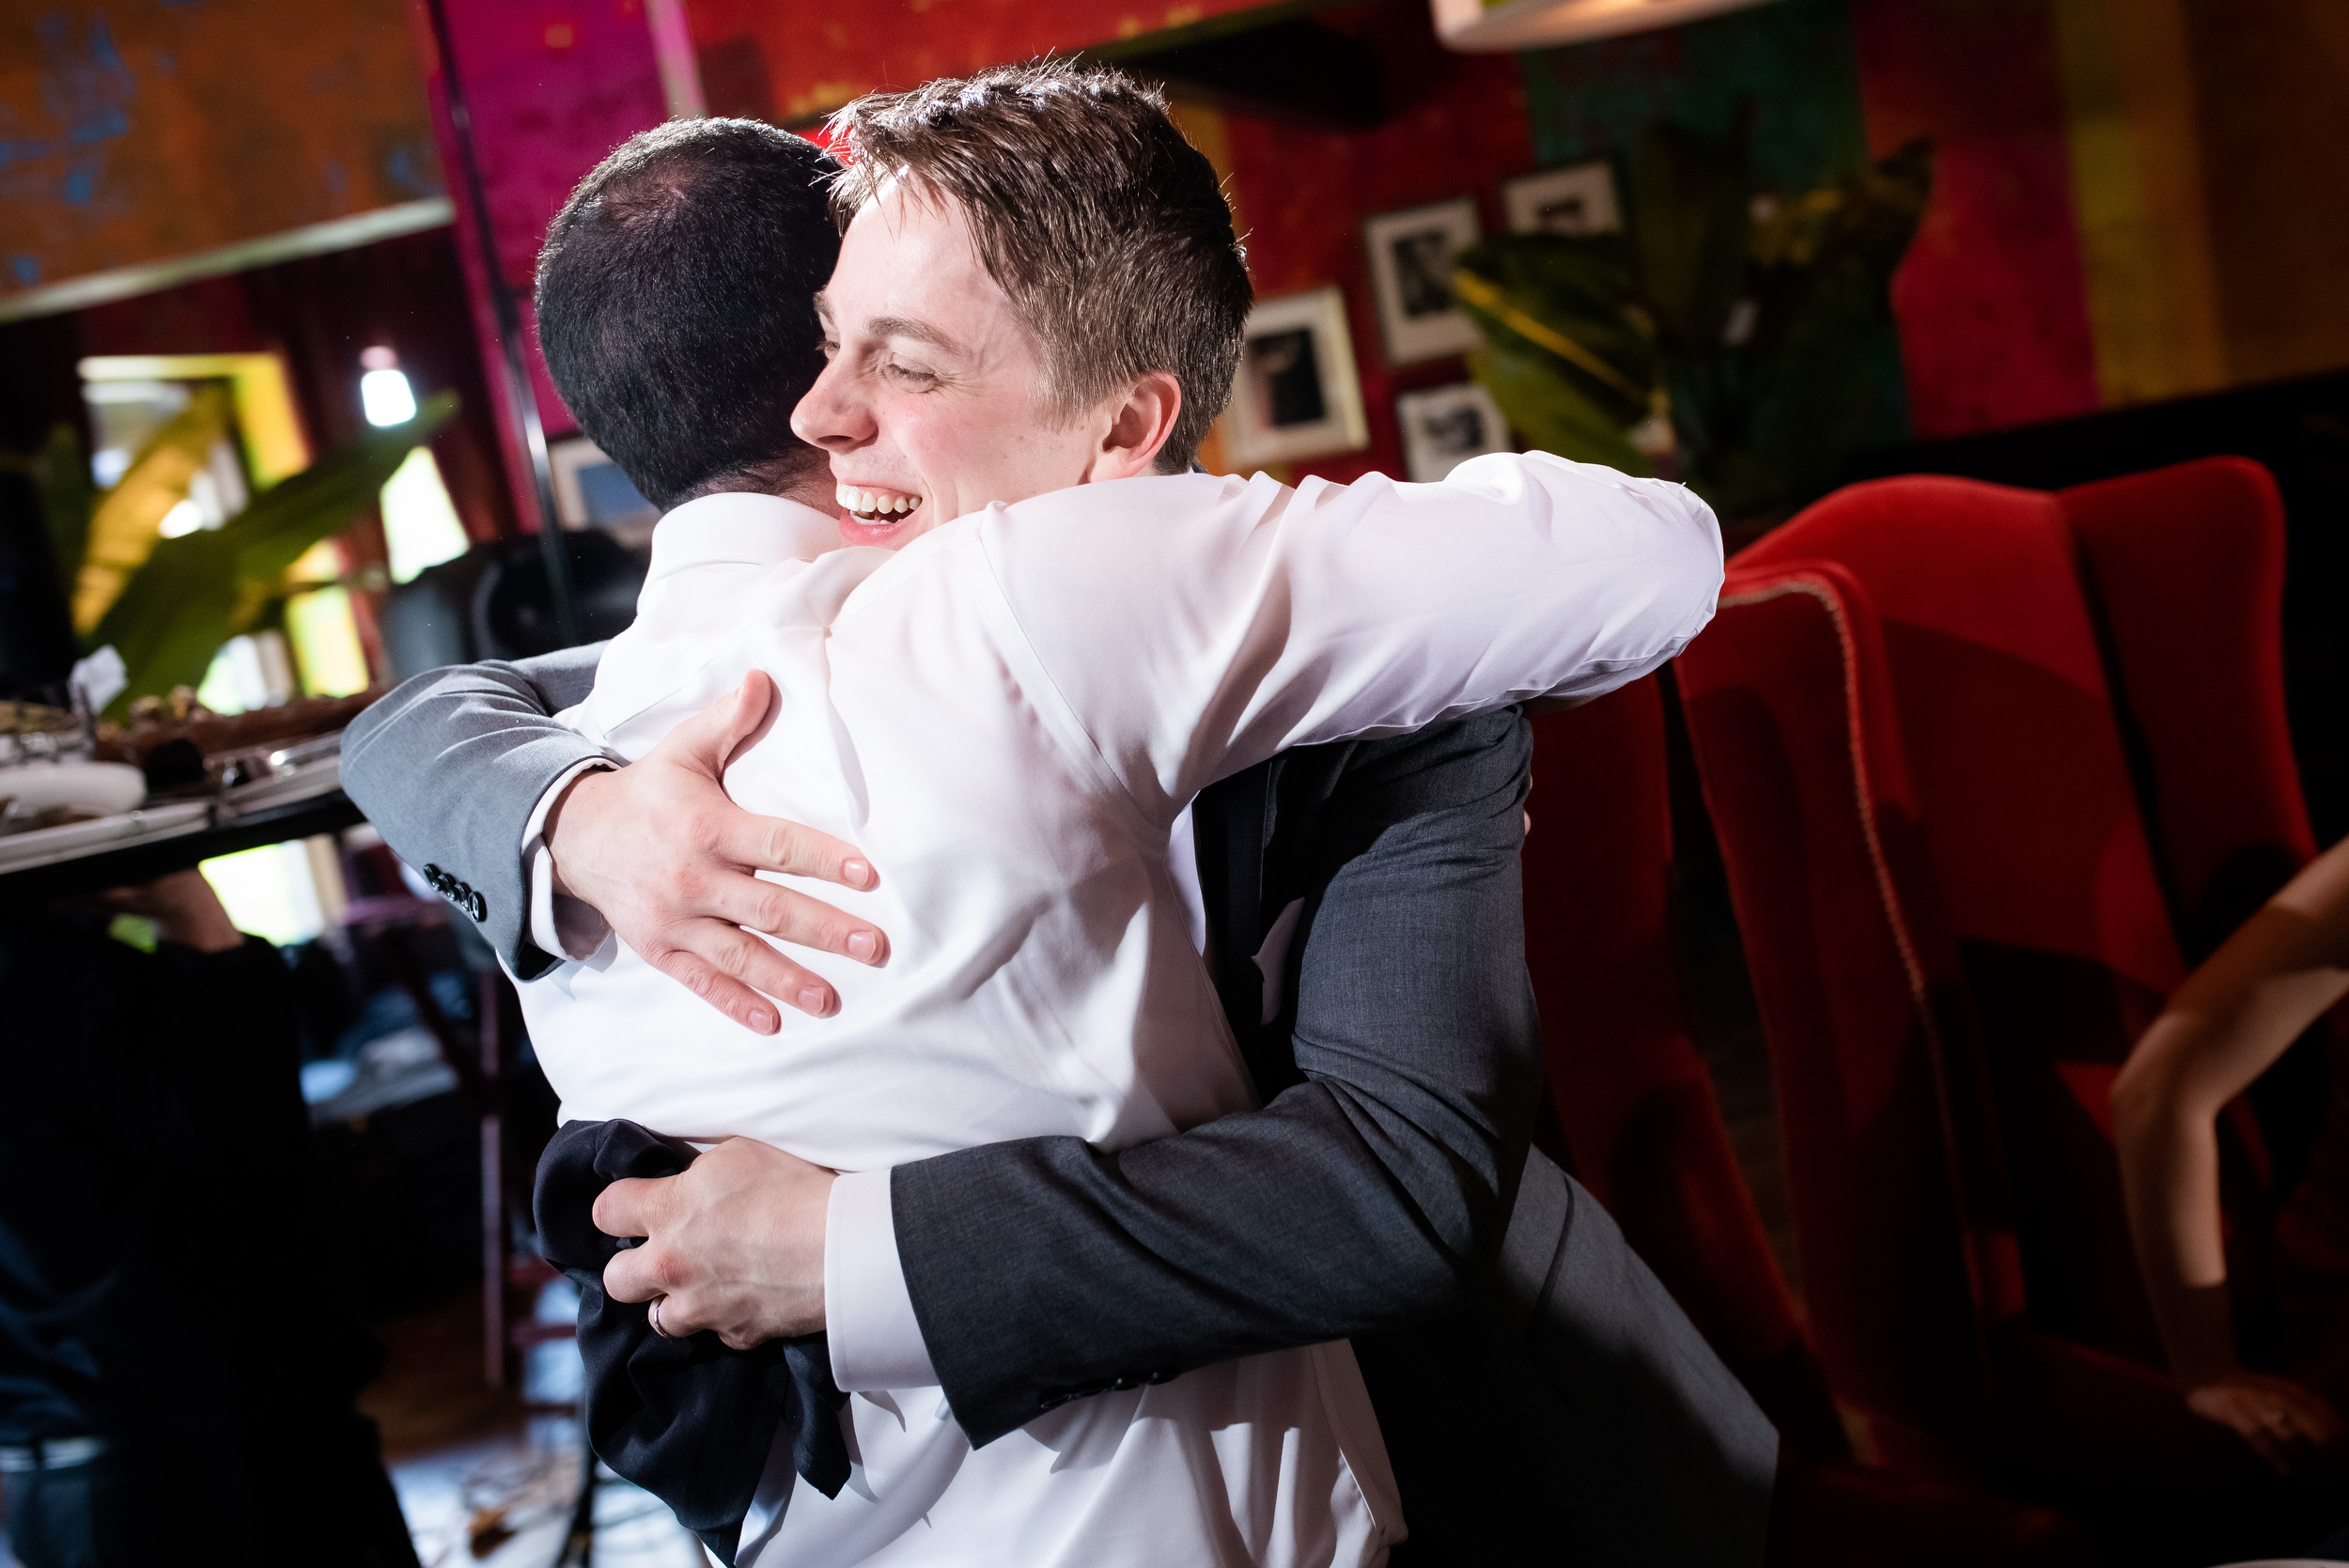 Best man and groom sharing a hug for Carnivale Chicago wedding captured by J Brown Photography